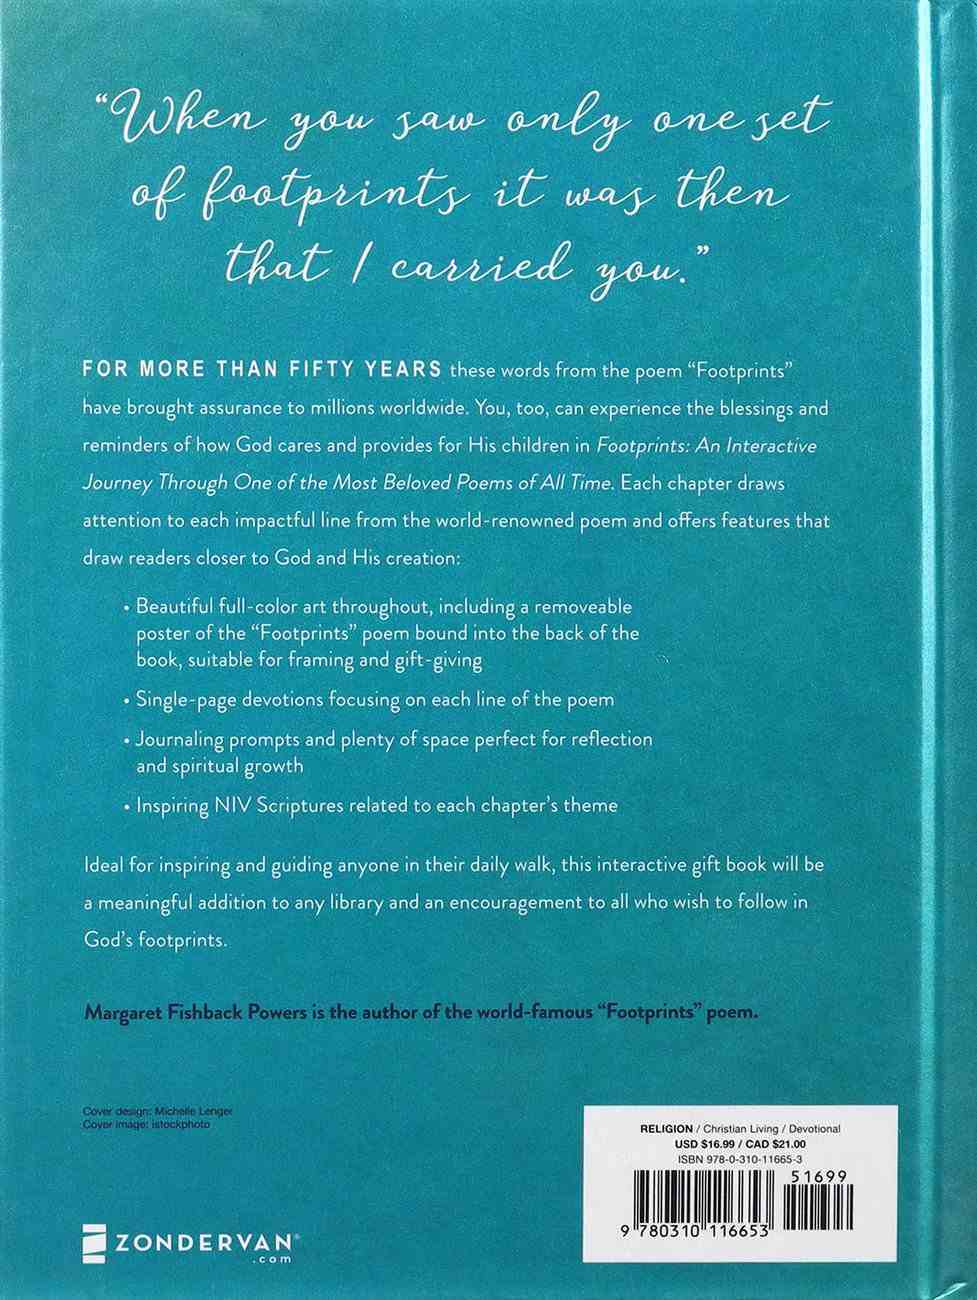 Footprints: An Interactive Journey Through One of the Most Beloved Poems of All Time Hardback